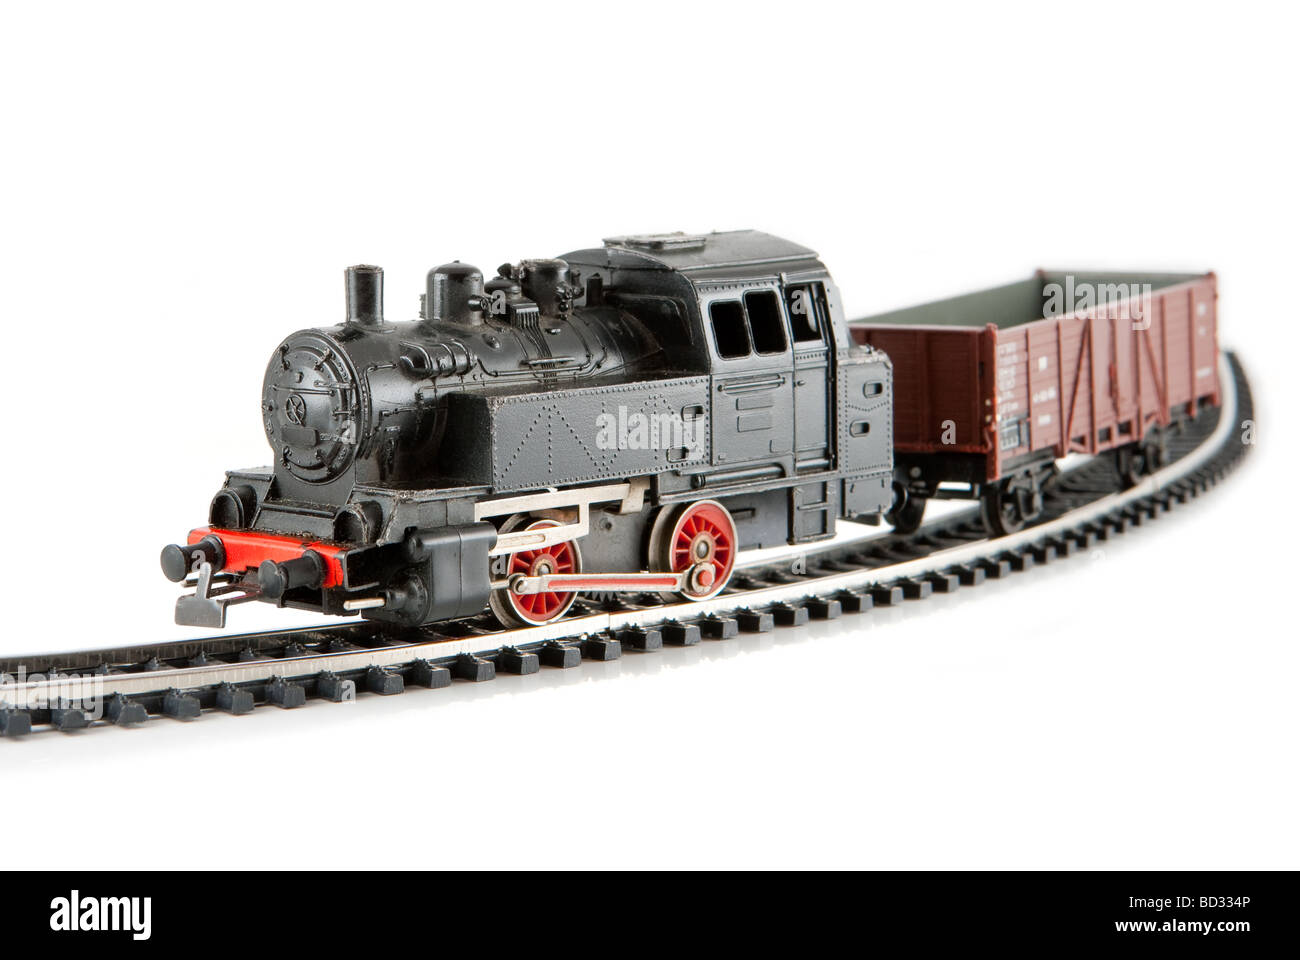 Miniature locomotive - Stock Image